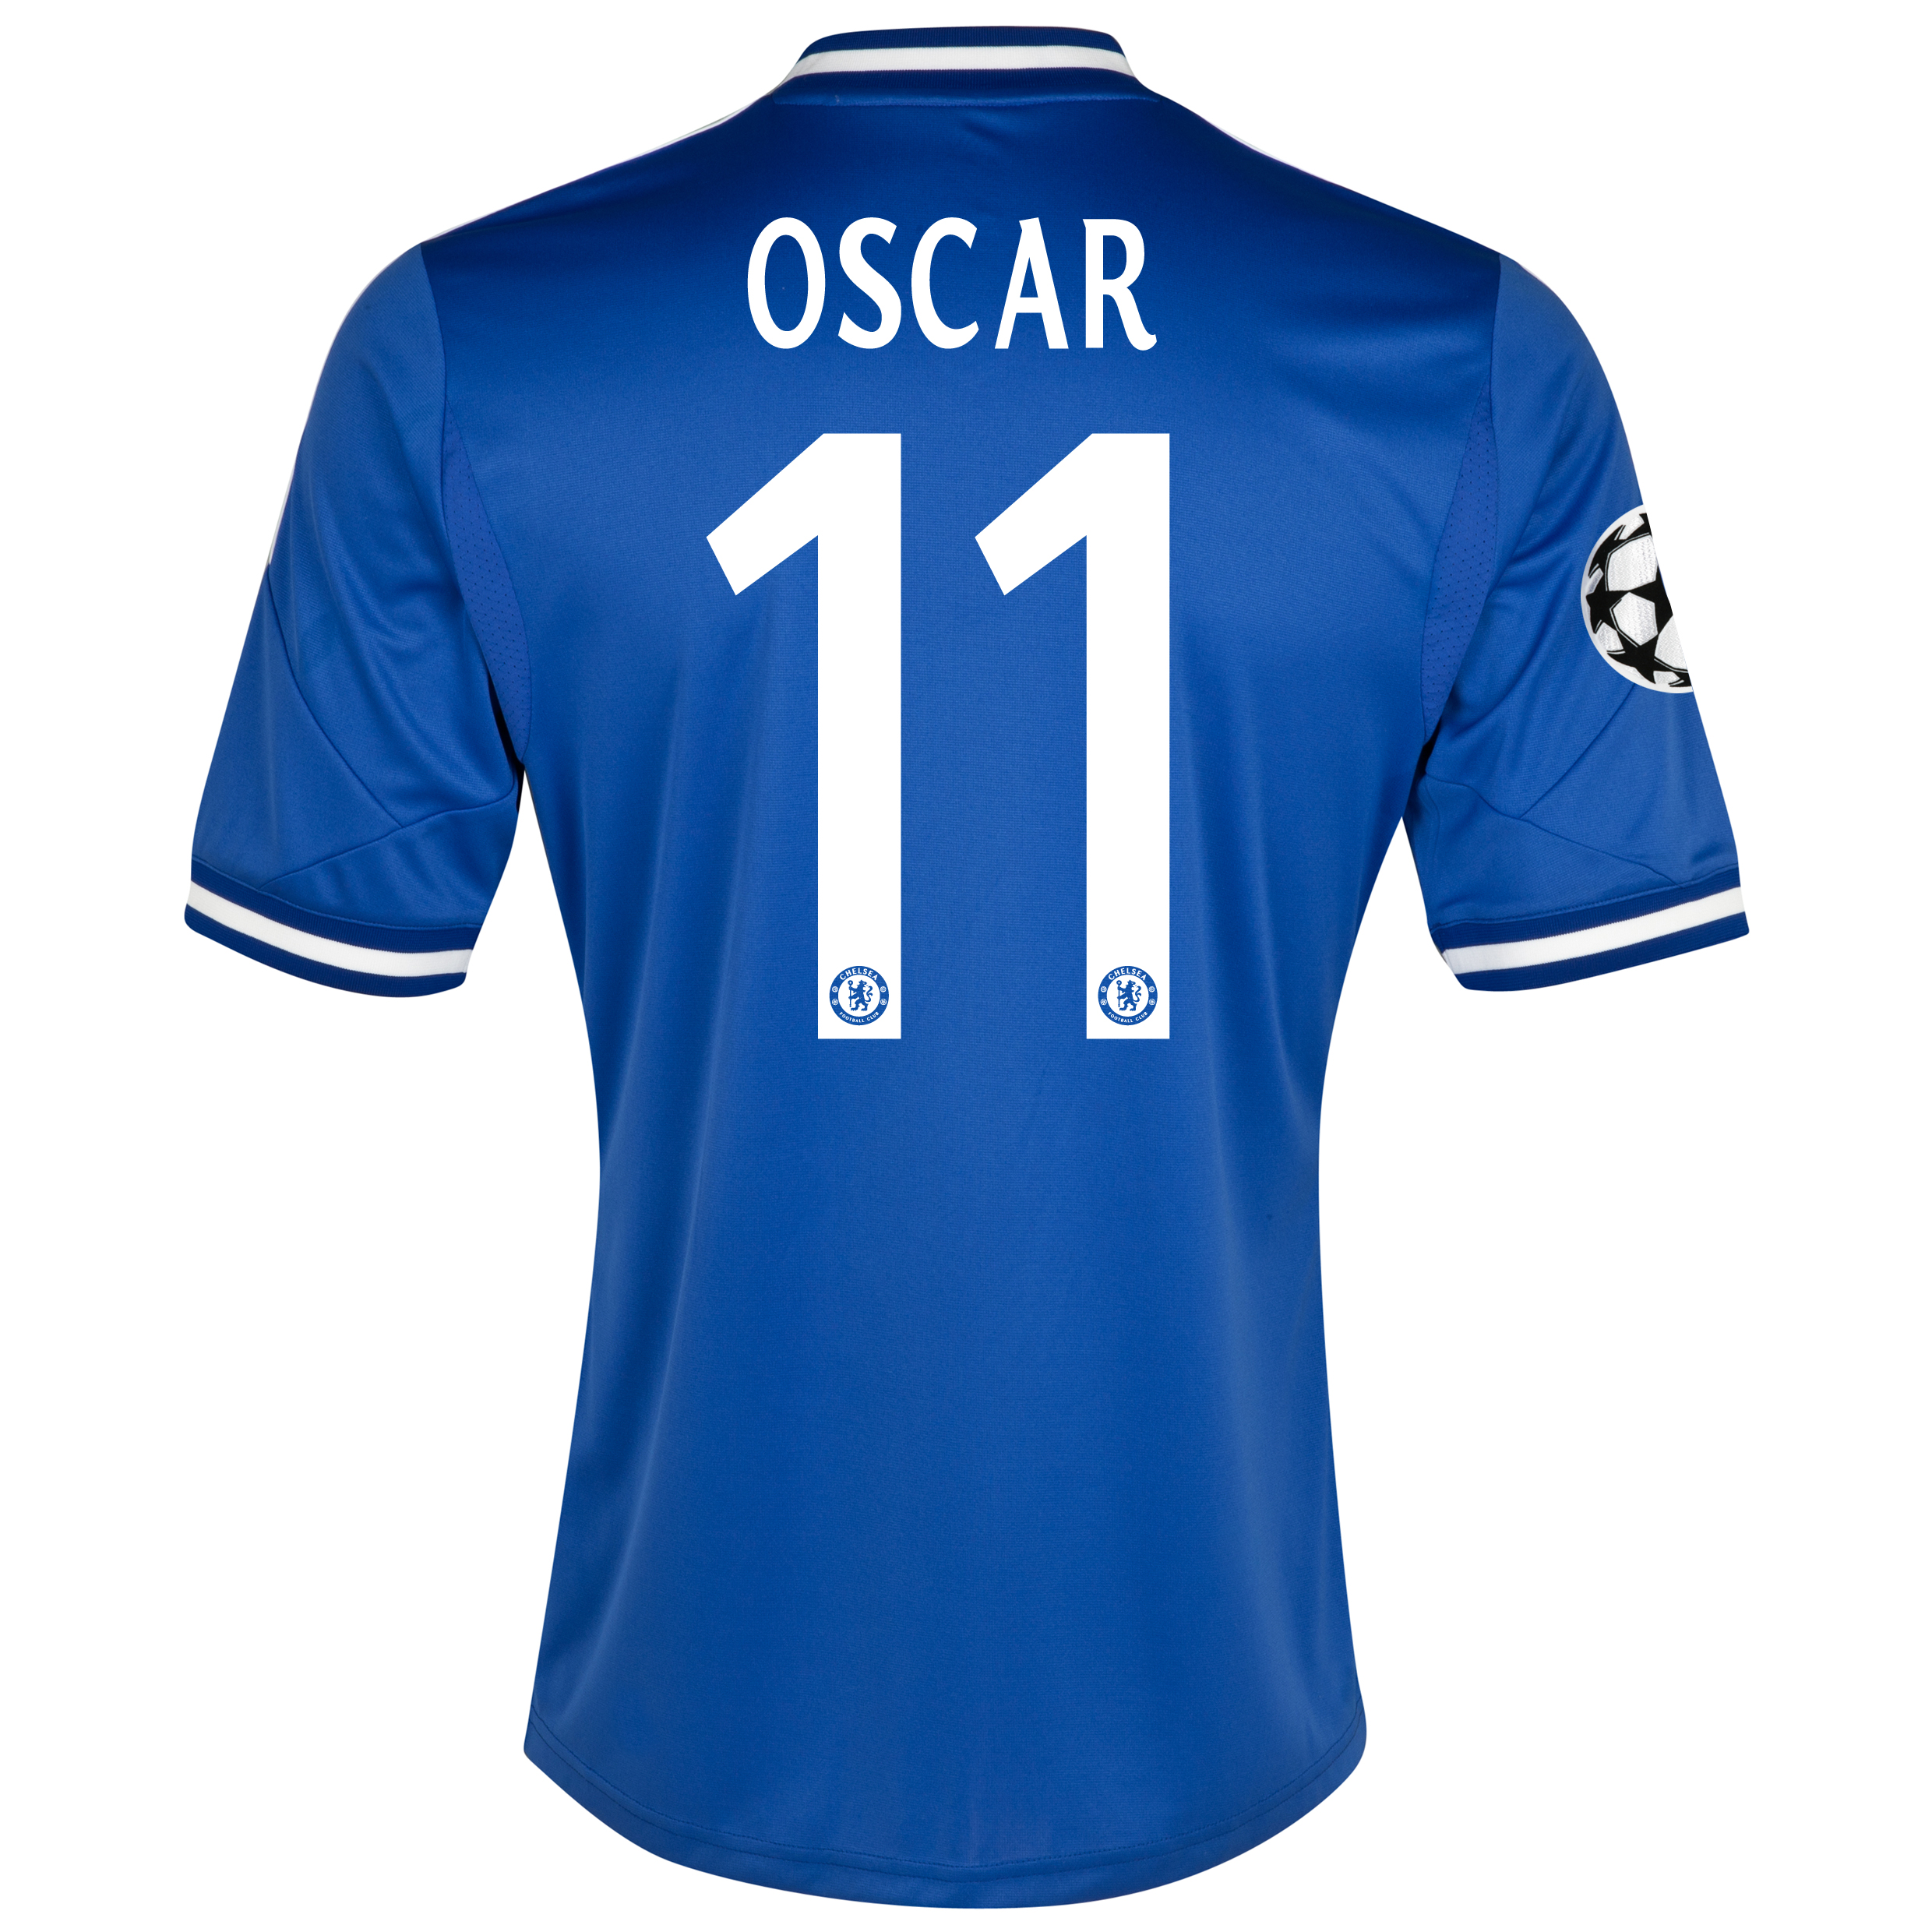 Chelsea UEFA Champions League Home Shirt 2013/14 - Outsize with Oscar 11 printing